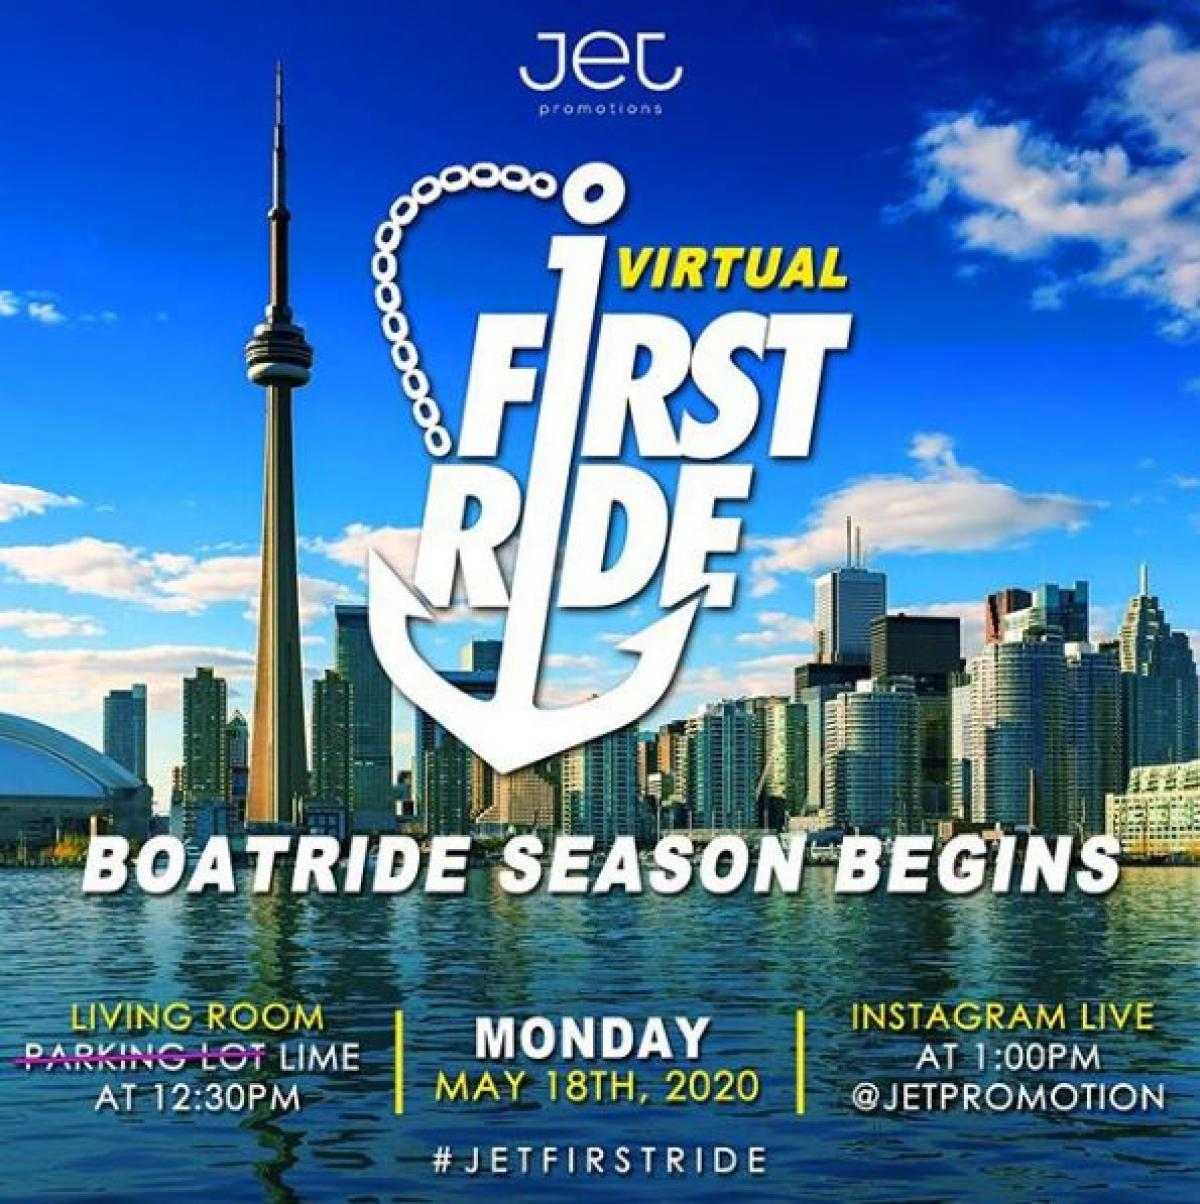 Virtual First Ride flyer or graphic.